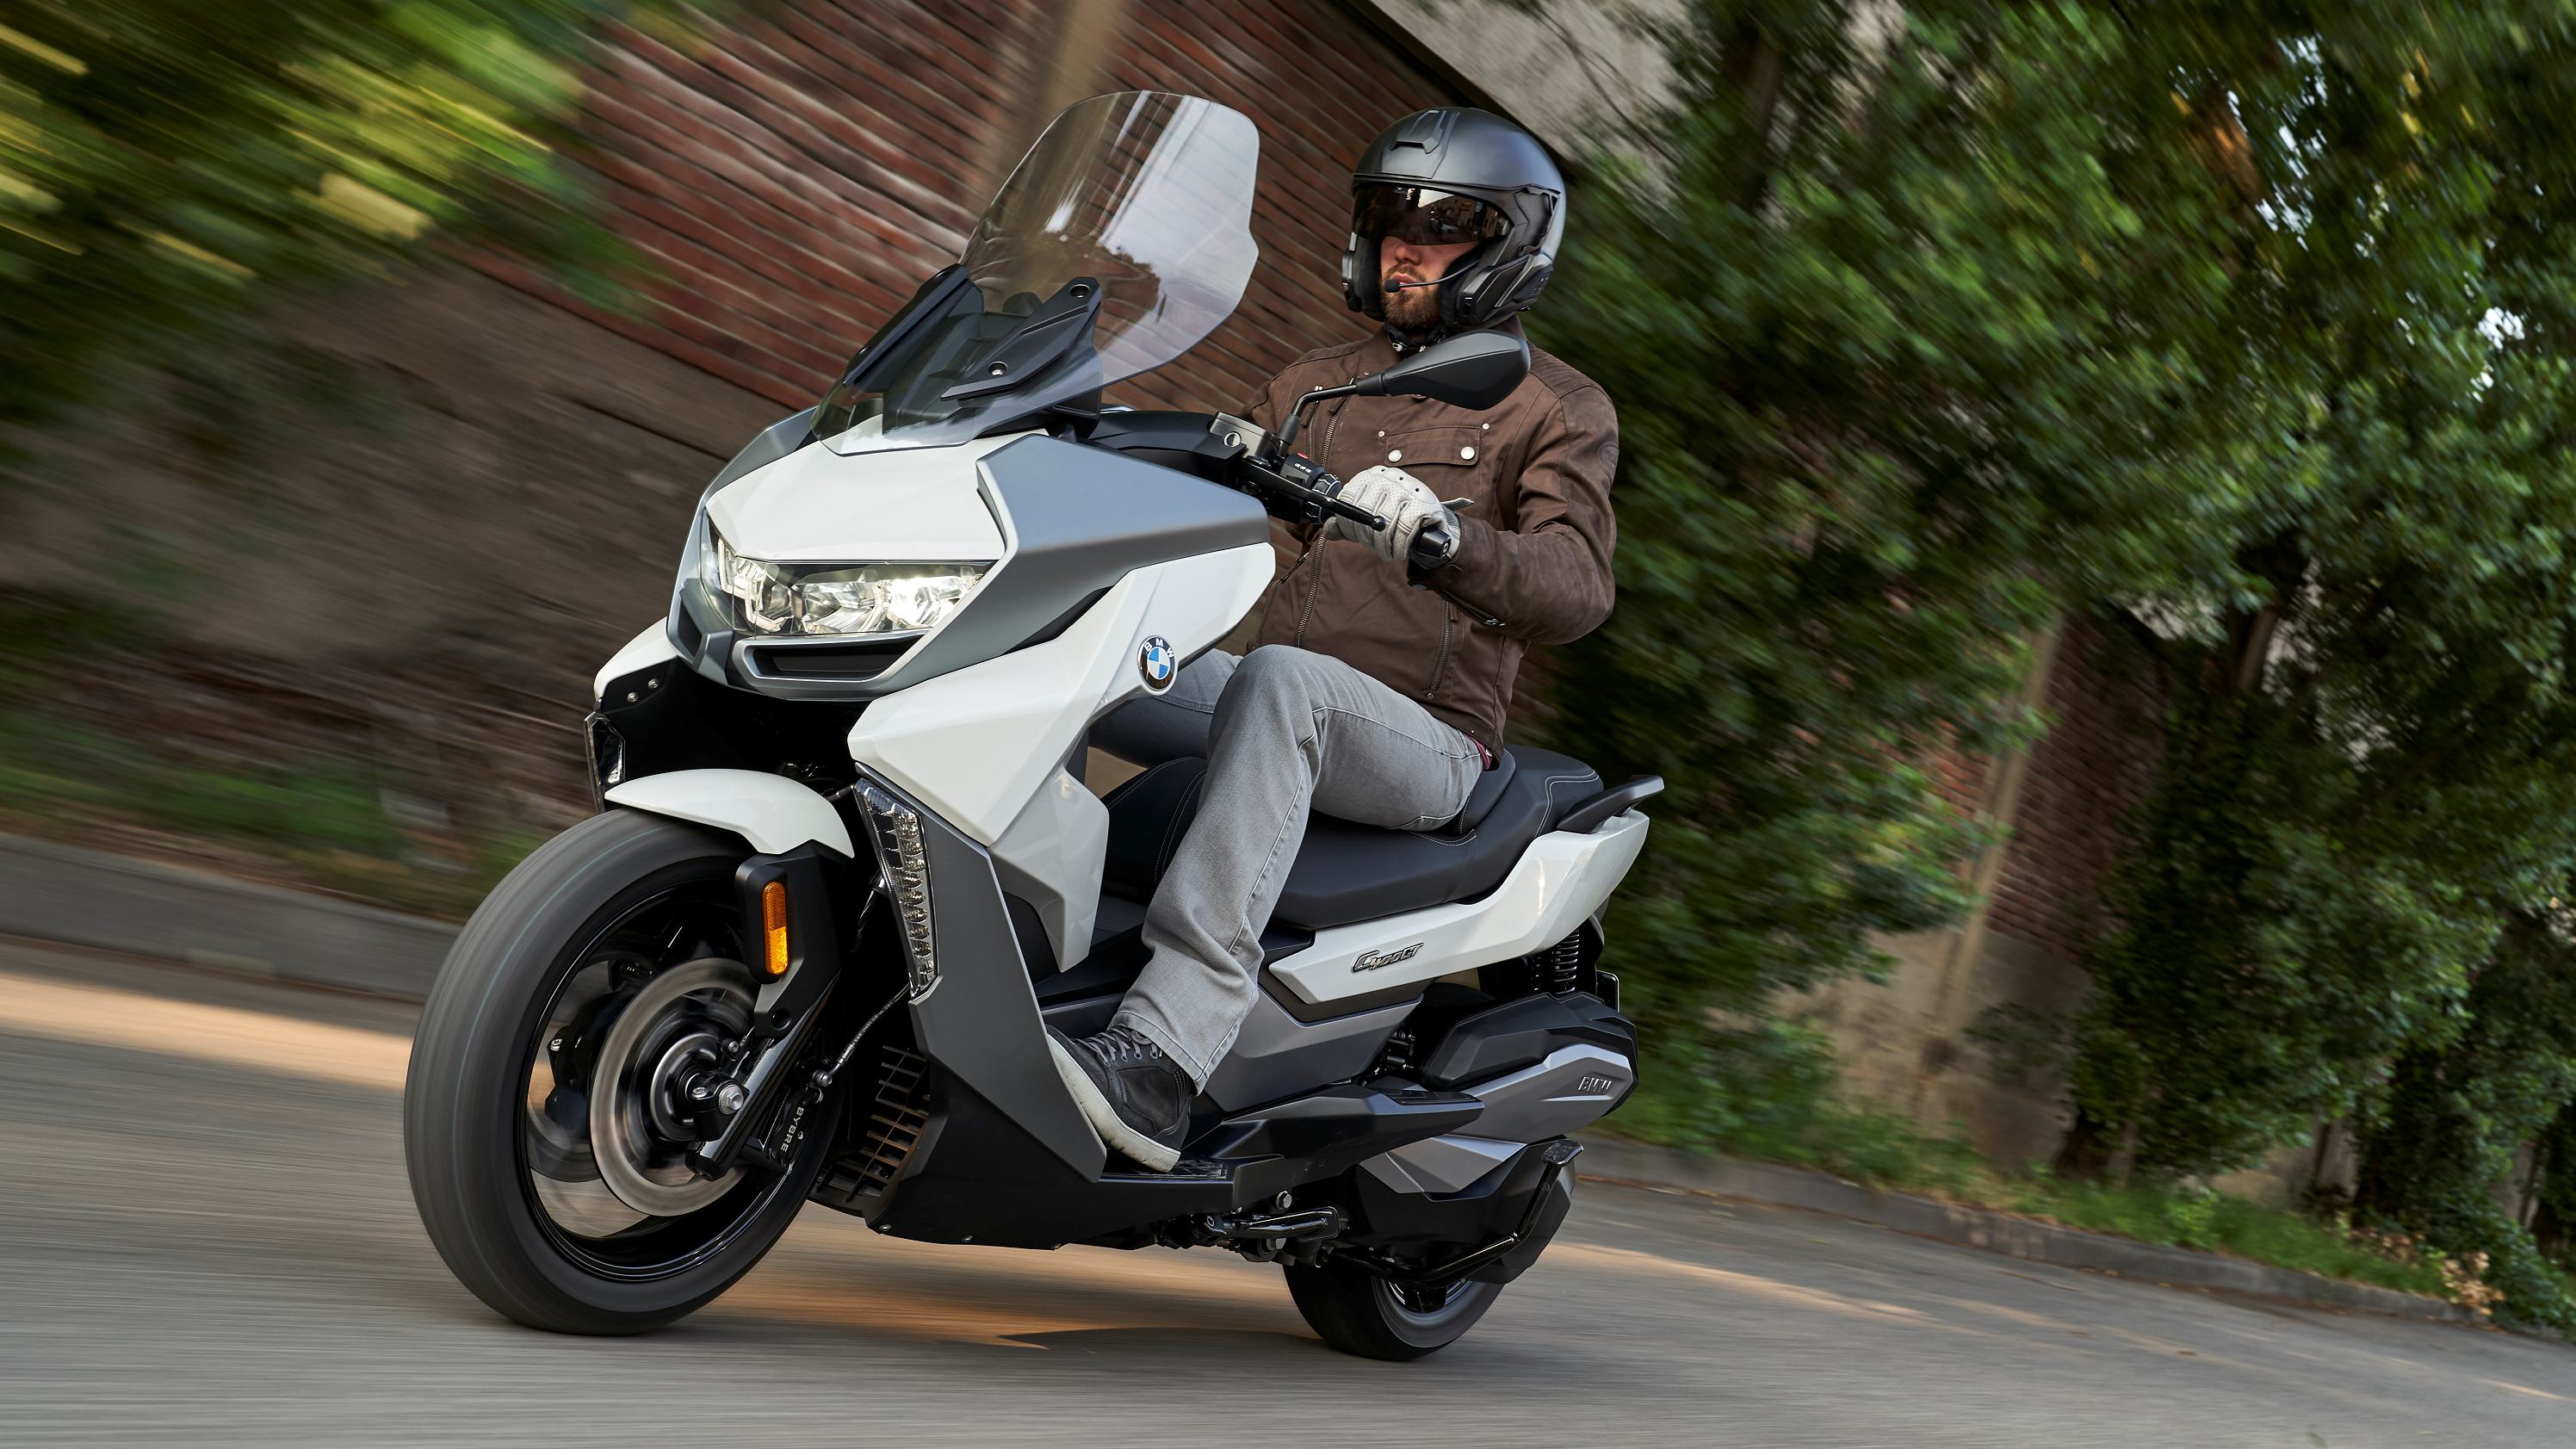 2019 BMW C 400 GT Pictures, Photos, Wallpapers.